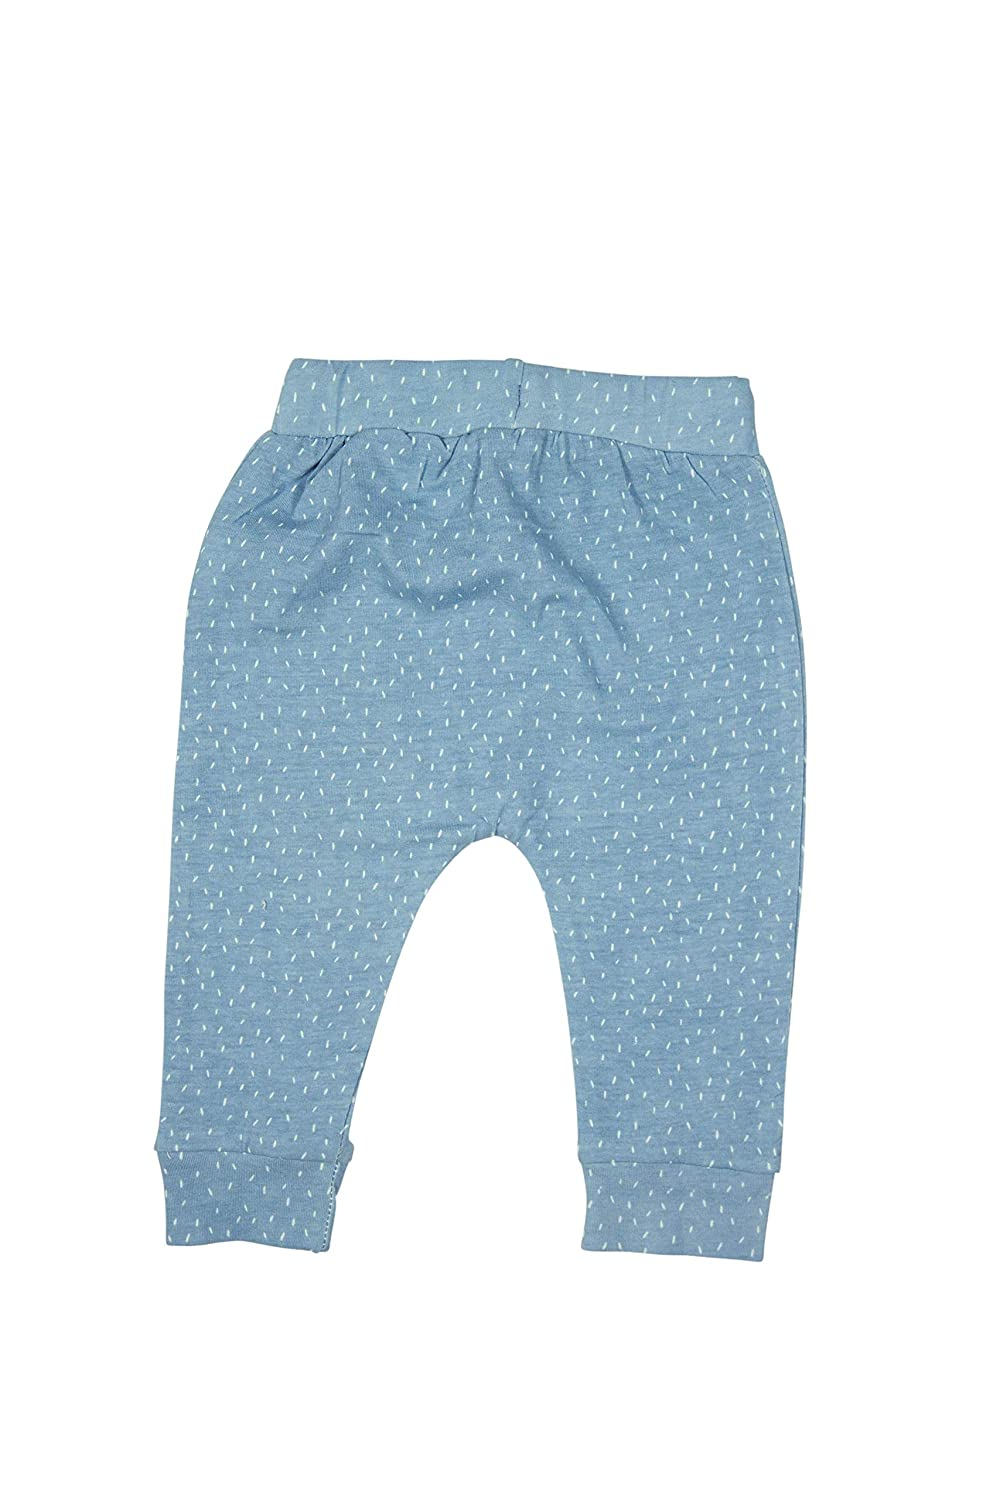 62 LITTLE DUTCH 180214 Baby-Hose Sprinkles Adventure Blue Gr